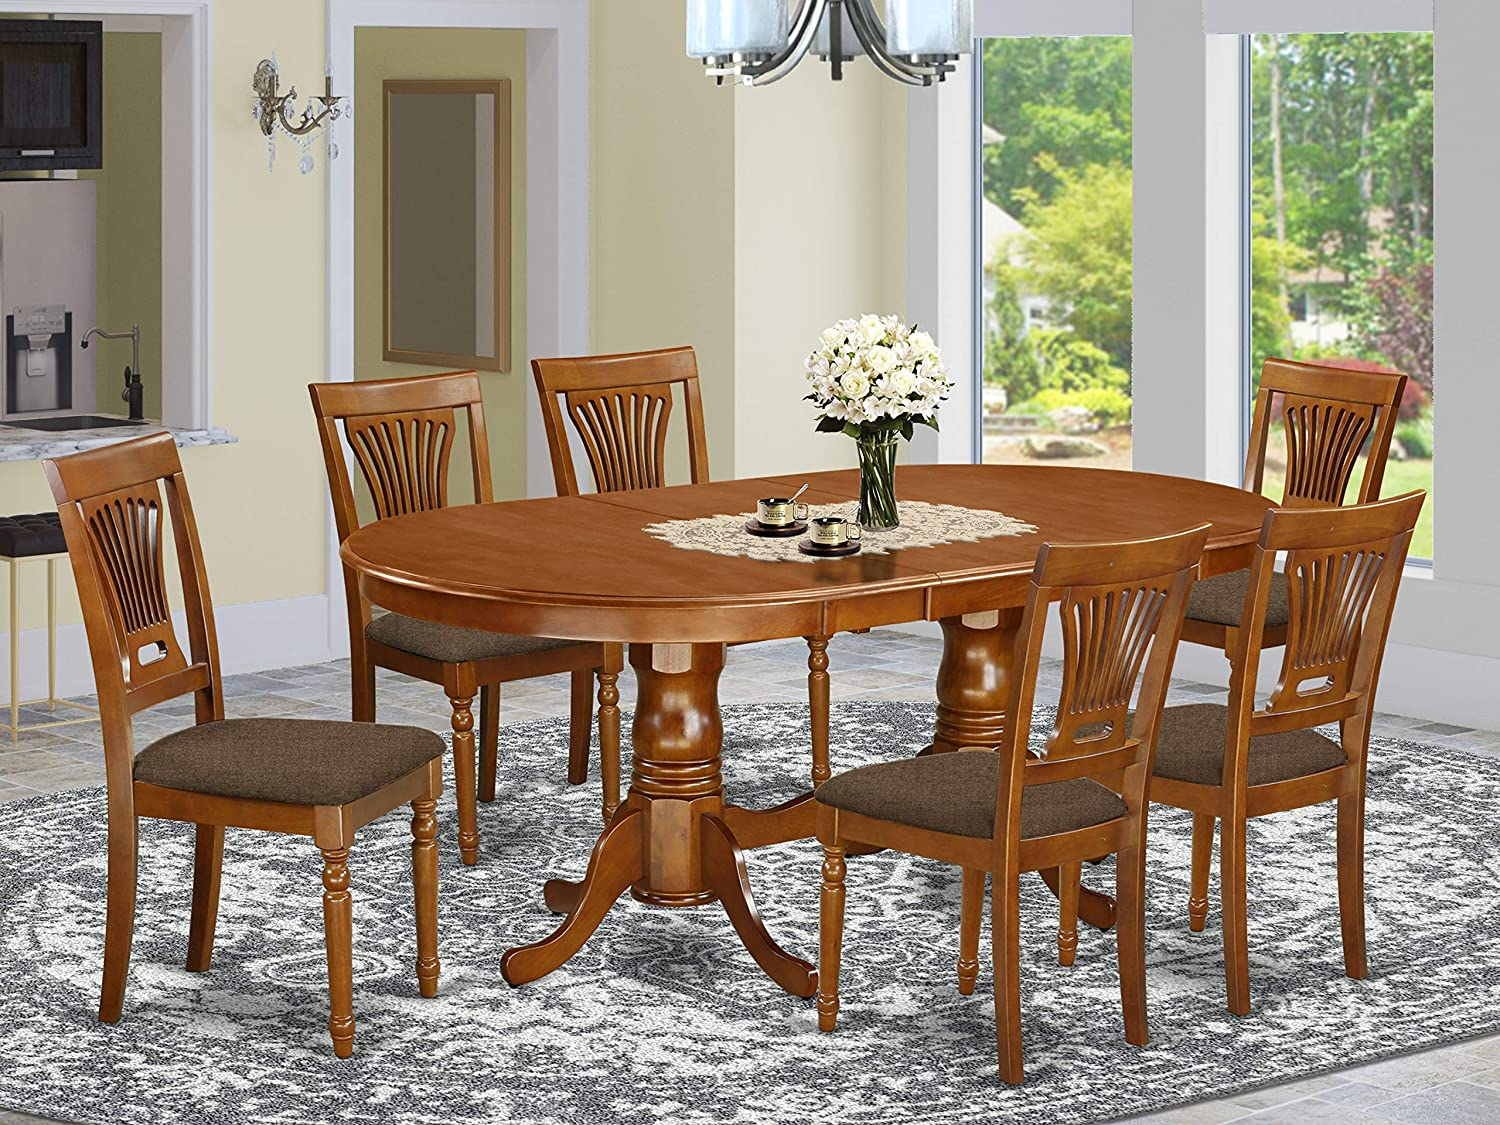 Amazon Com 7 Pc Dining Room Set For 6 Dining Table With 6 Dining Chairs Furniture Decor